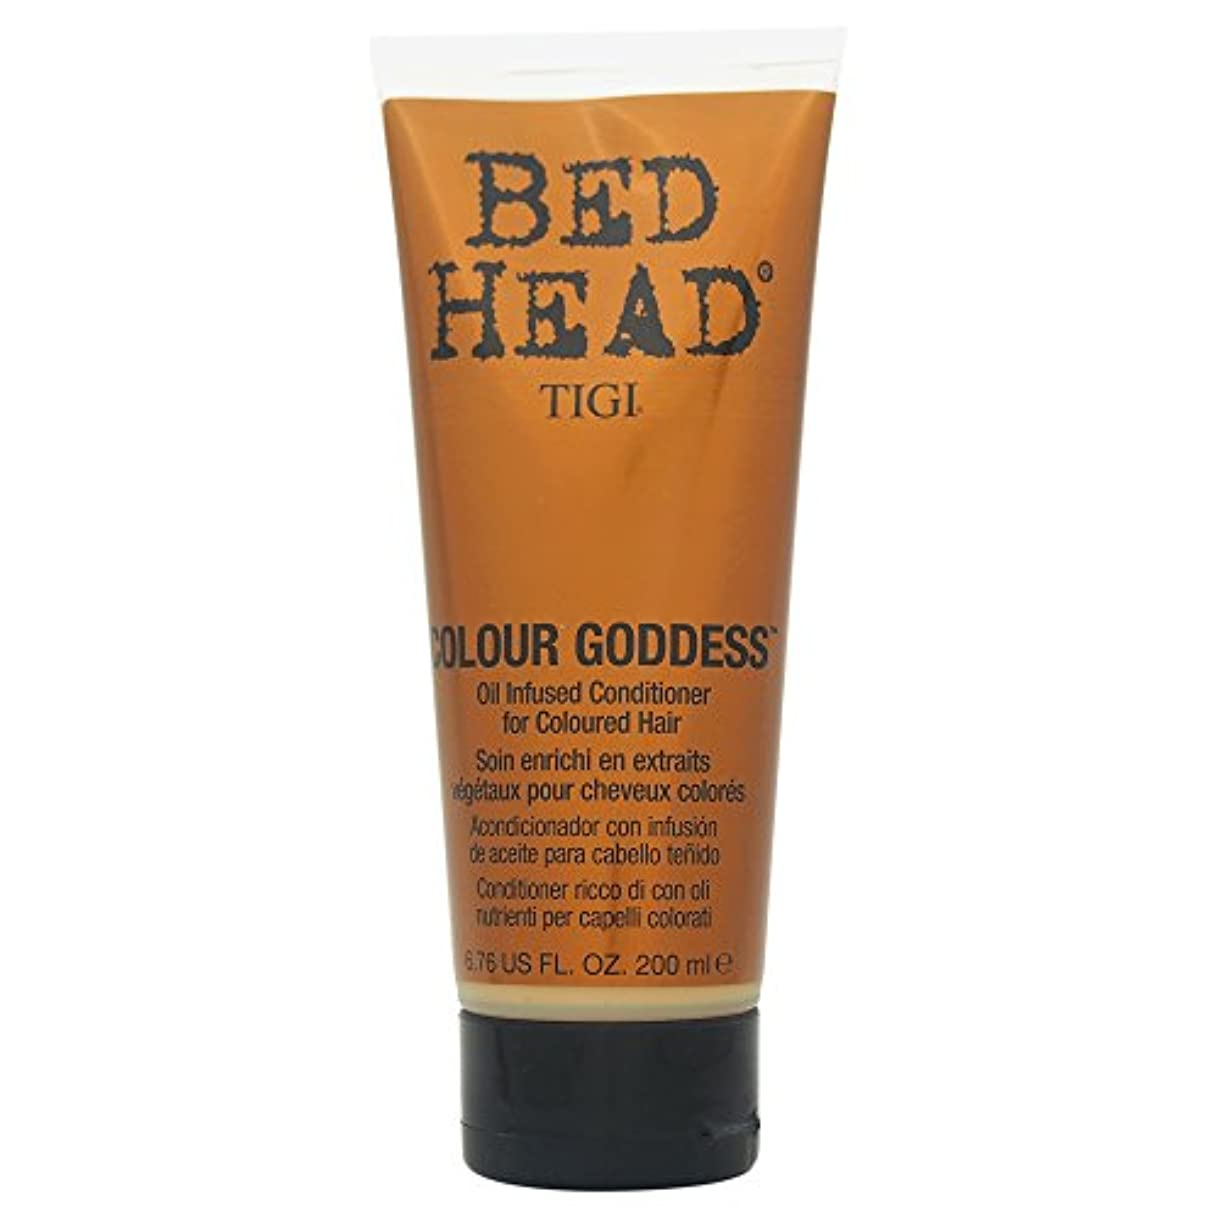 ハーネスマイコン頑固なTigi Bed Head Colour Goddess Oil Infused Conditioner 200ml [並行輸入品]